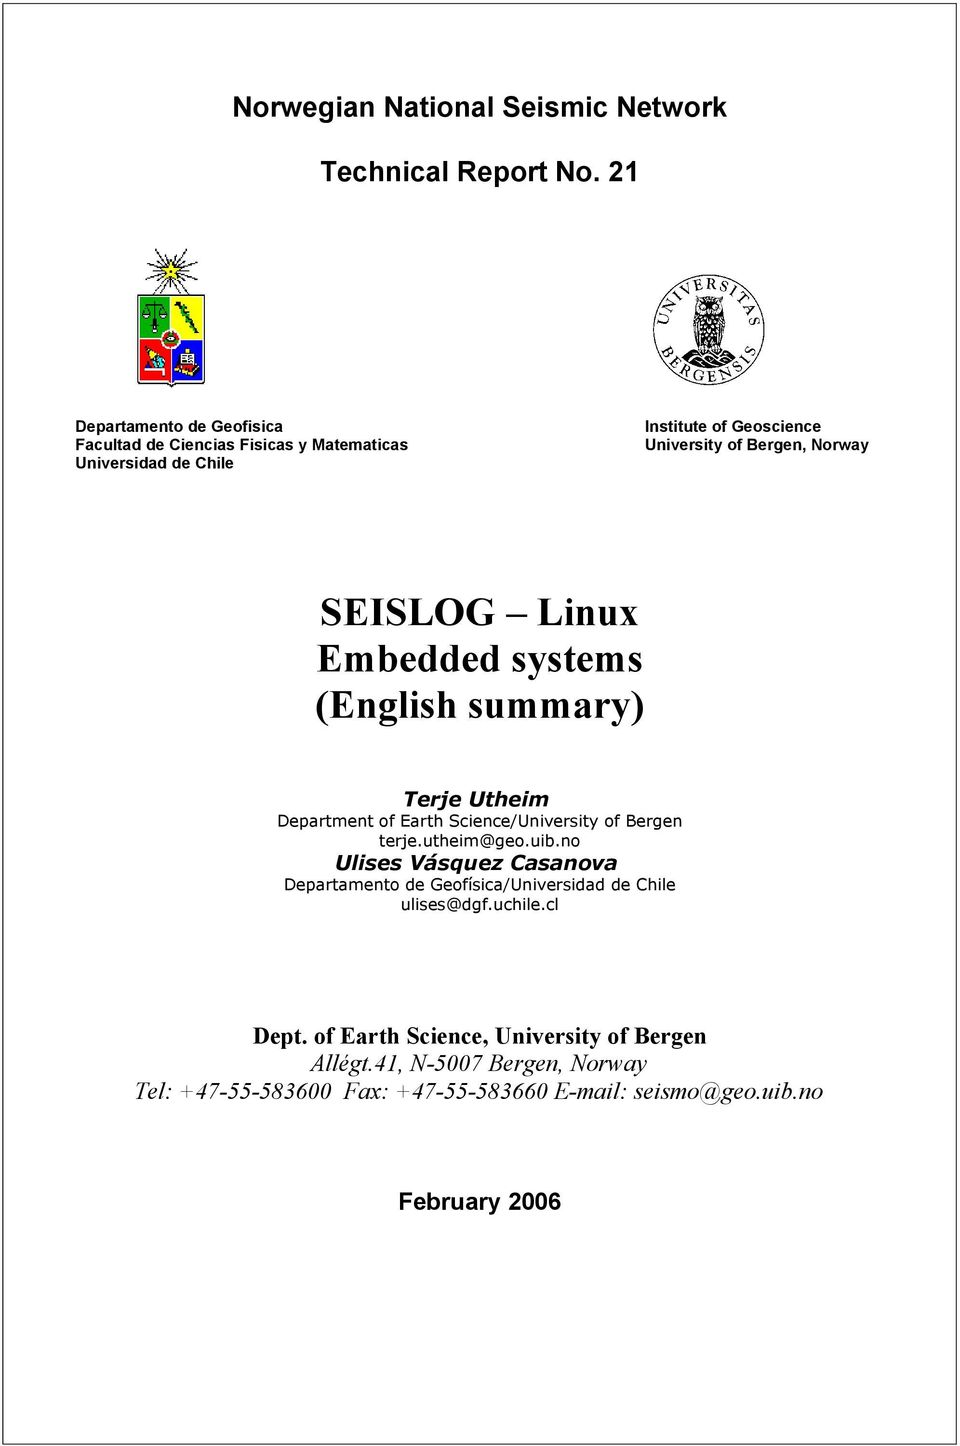 SEISLOG Linux Embedded systems (English summary) Terje Utheim Department of Earth Science/University of Bergen terje.utheim@geo.uib.